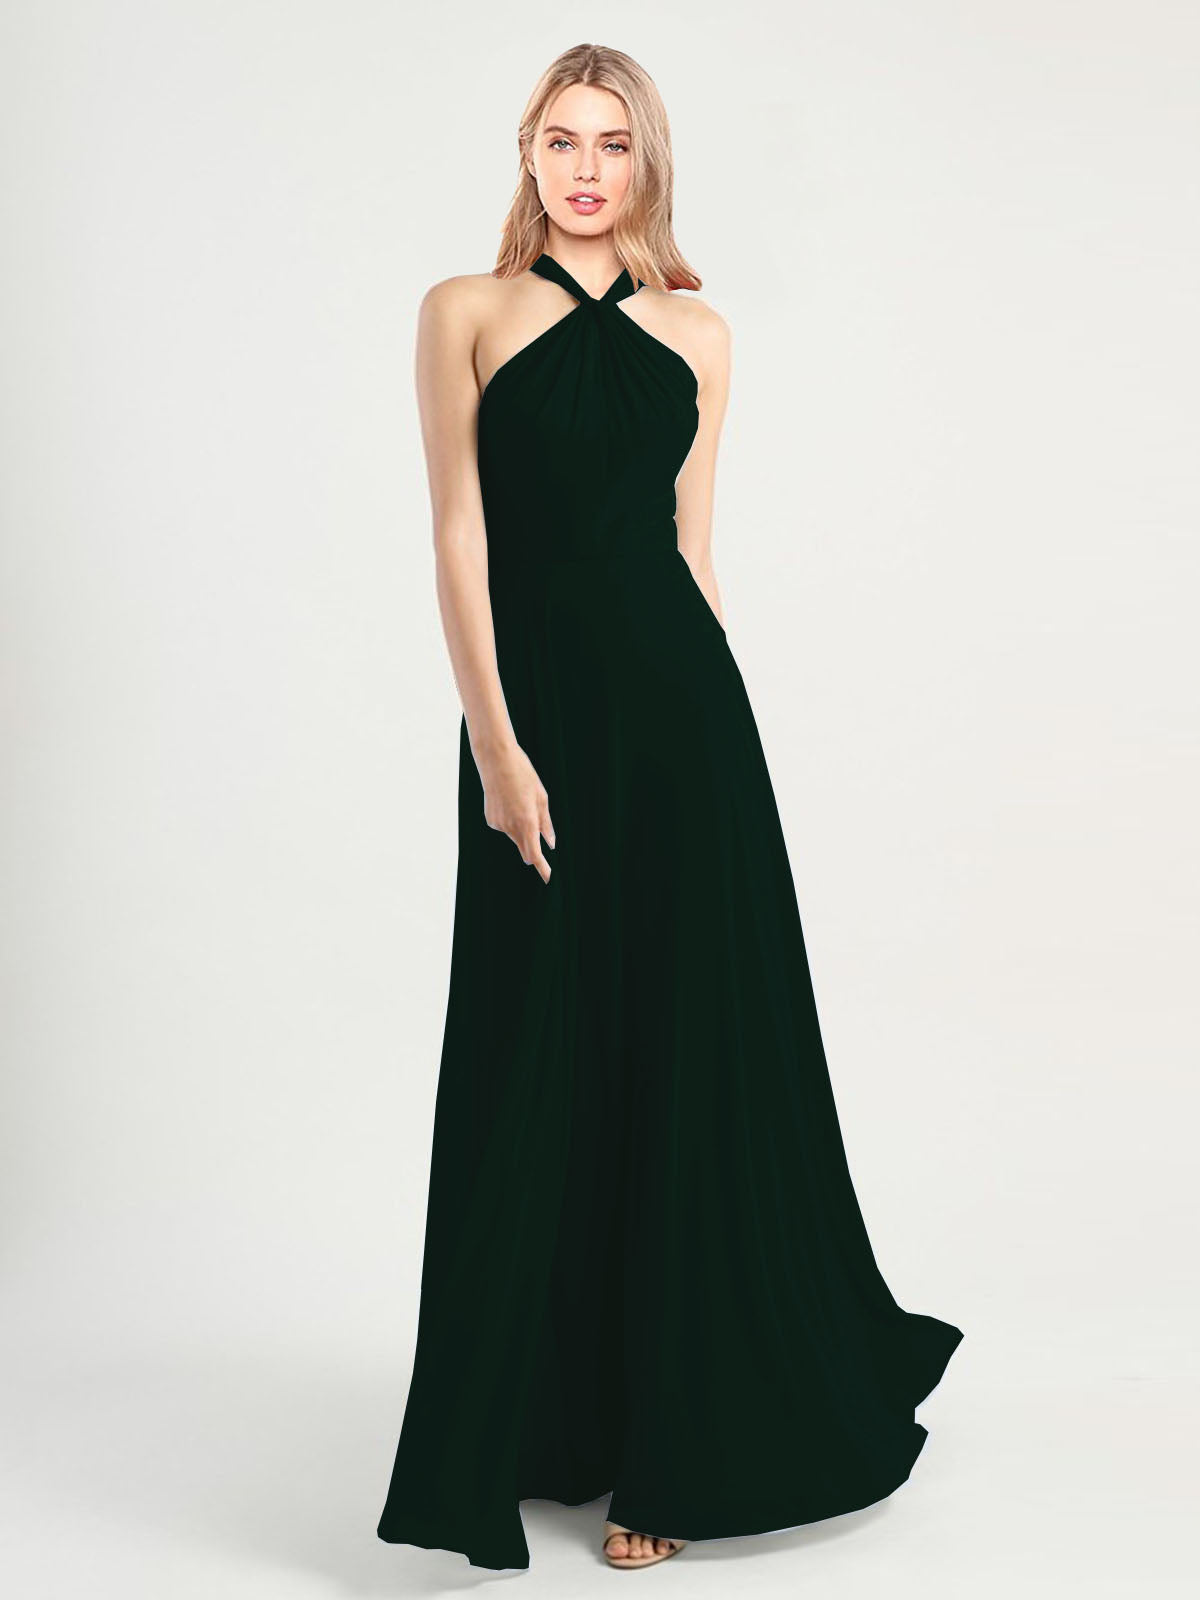 Long A-Line High Neck, Halter Sleeveless Ever Green Chiffon Bridesmaid Dress Yoli